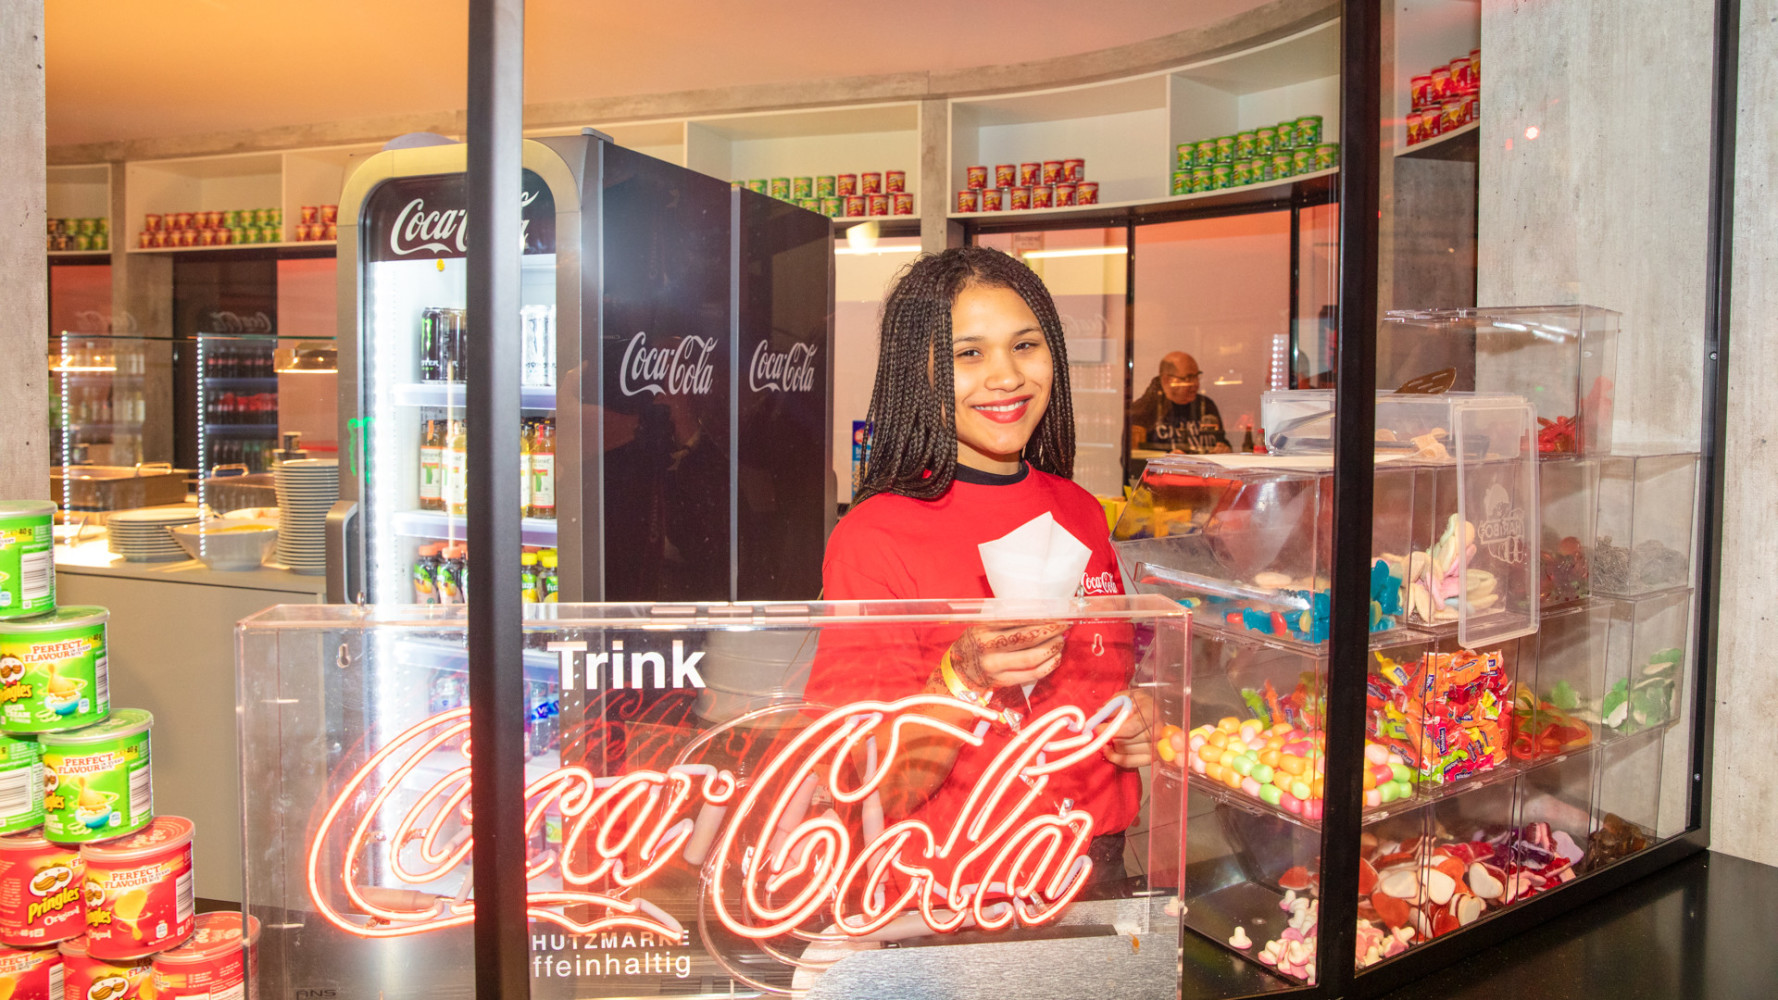 Fleek Management provides 100 hostesses and hosts for Coca-Cola